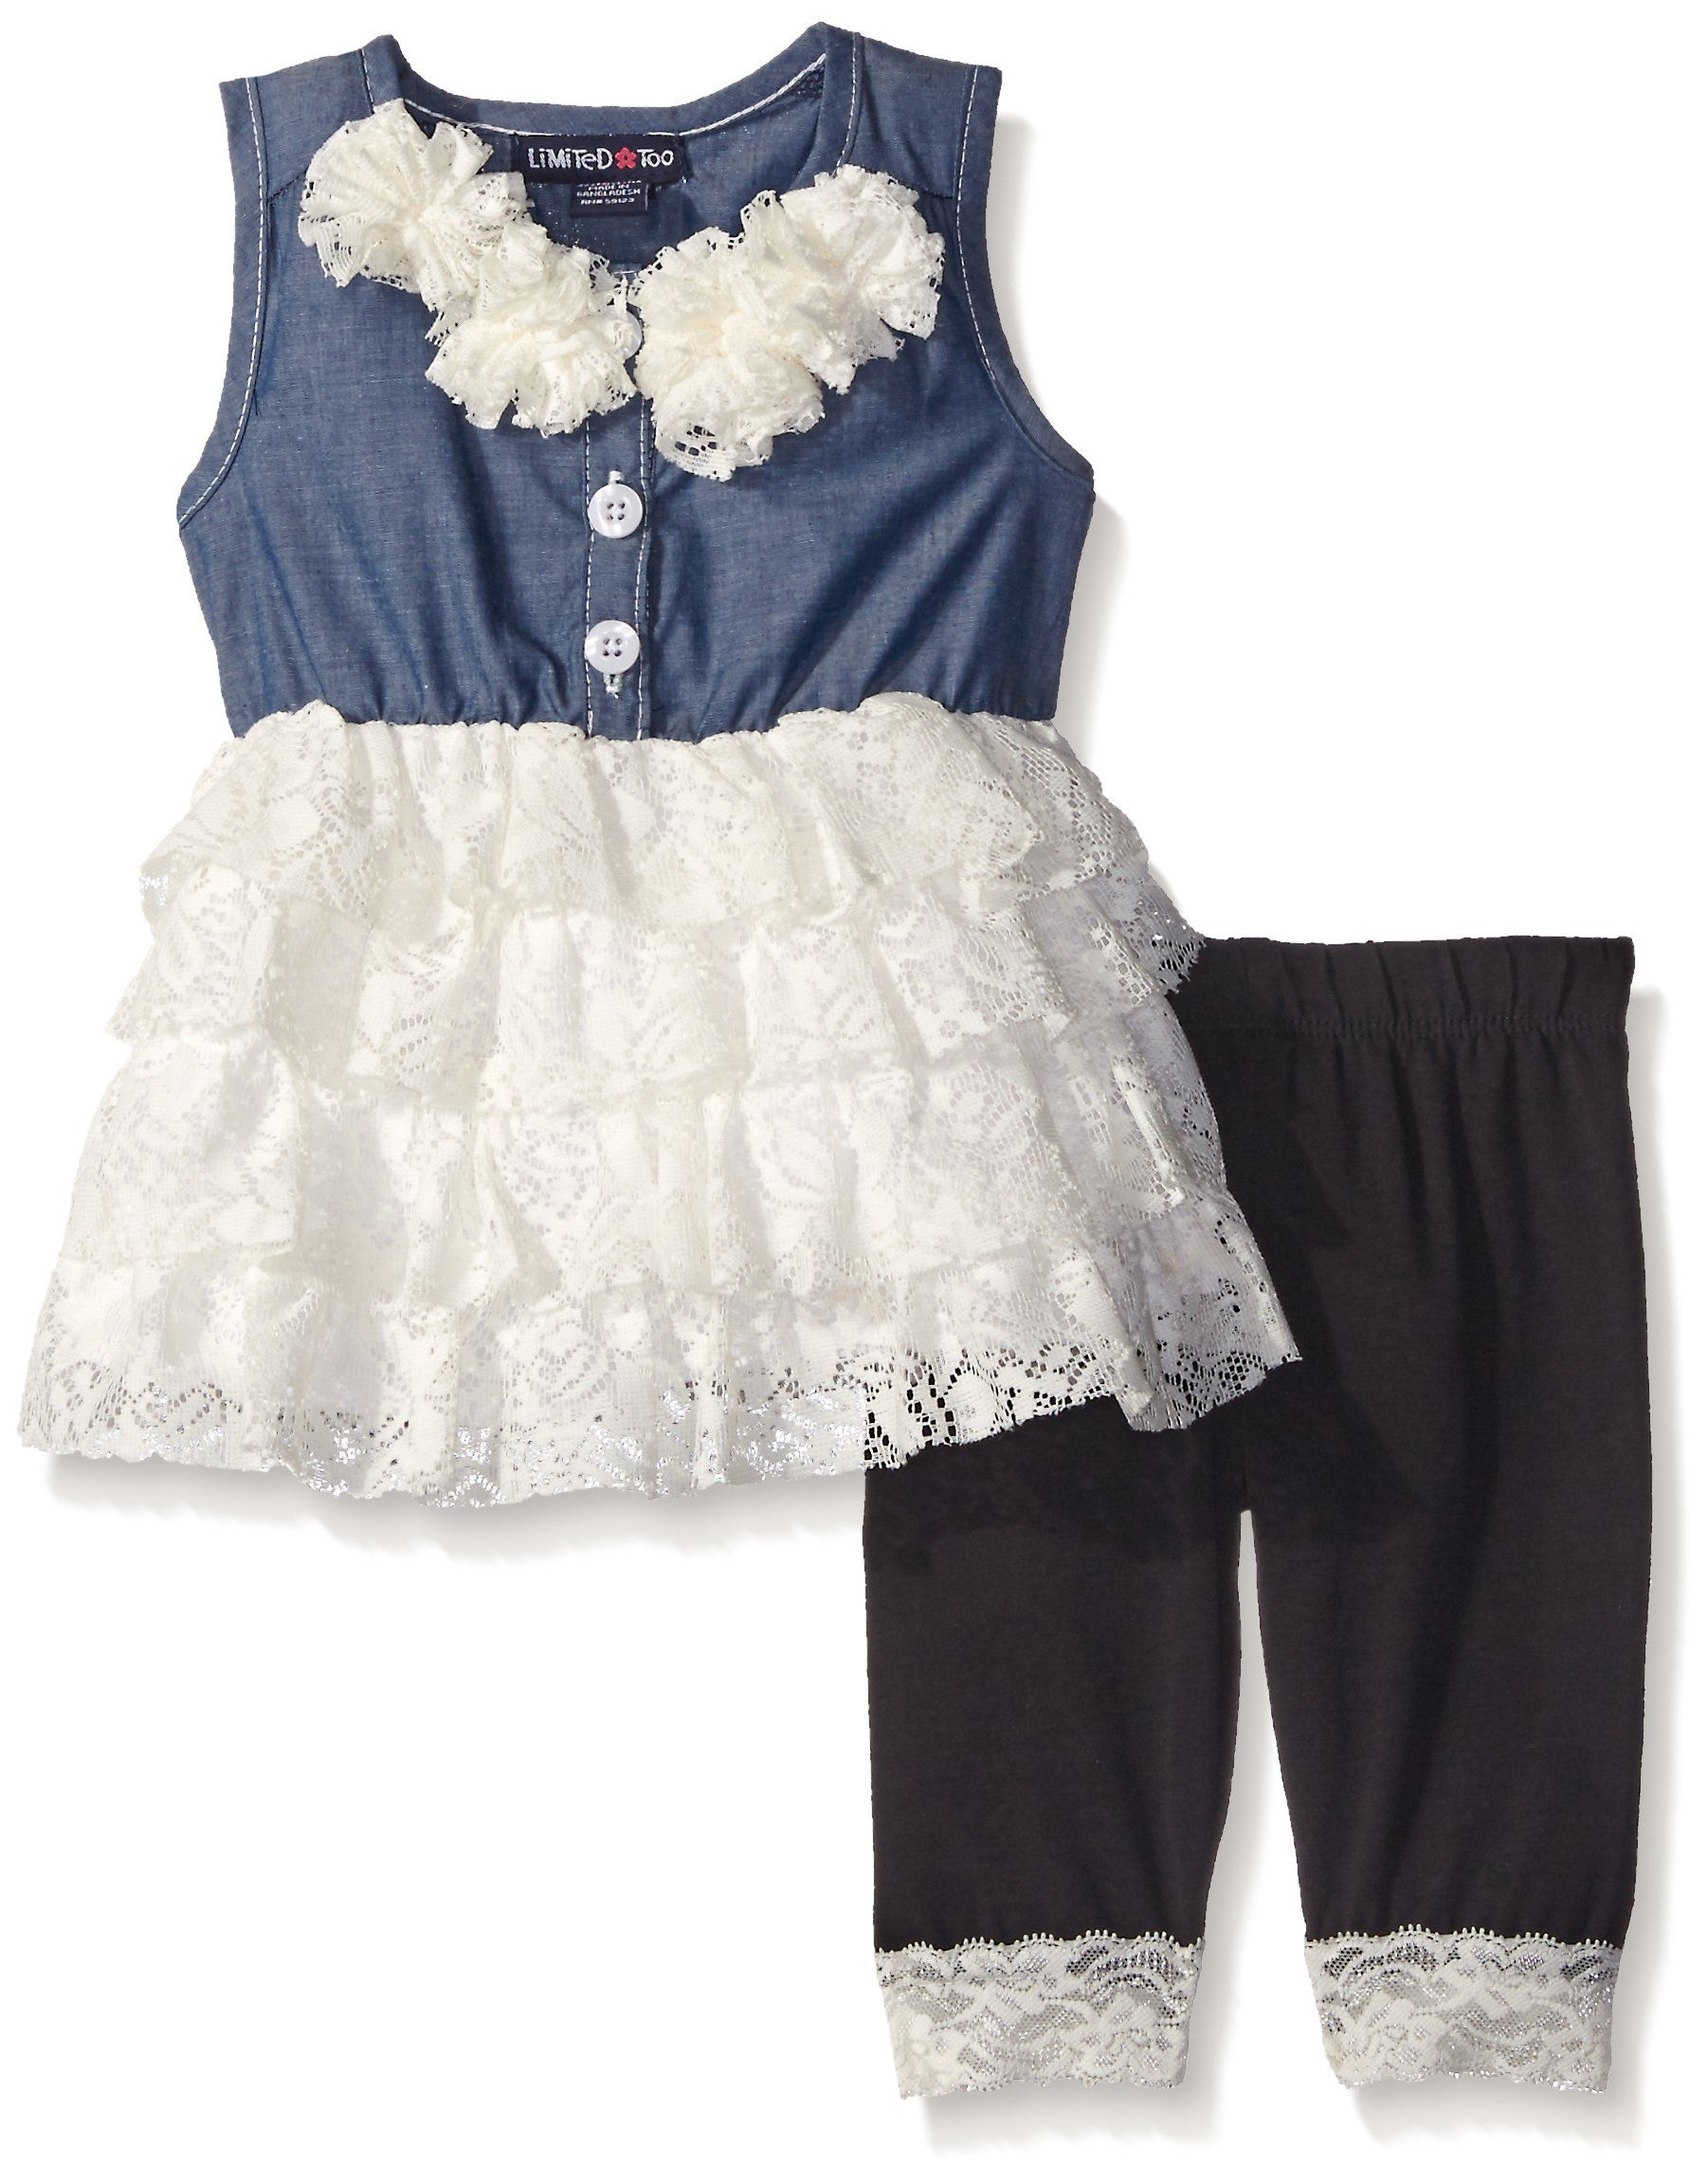 Limited Too Girls Fashion Top and Legging Set 1182 Vanilla 18